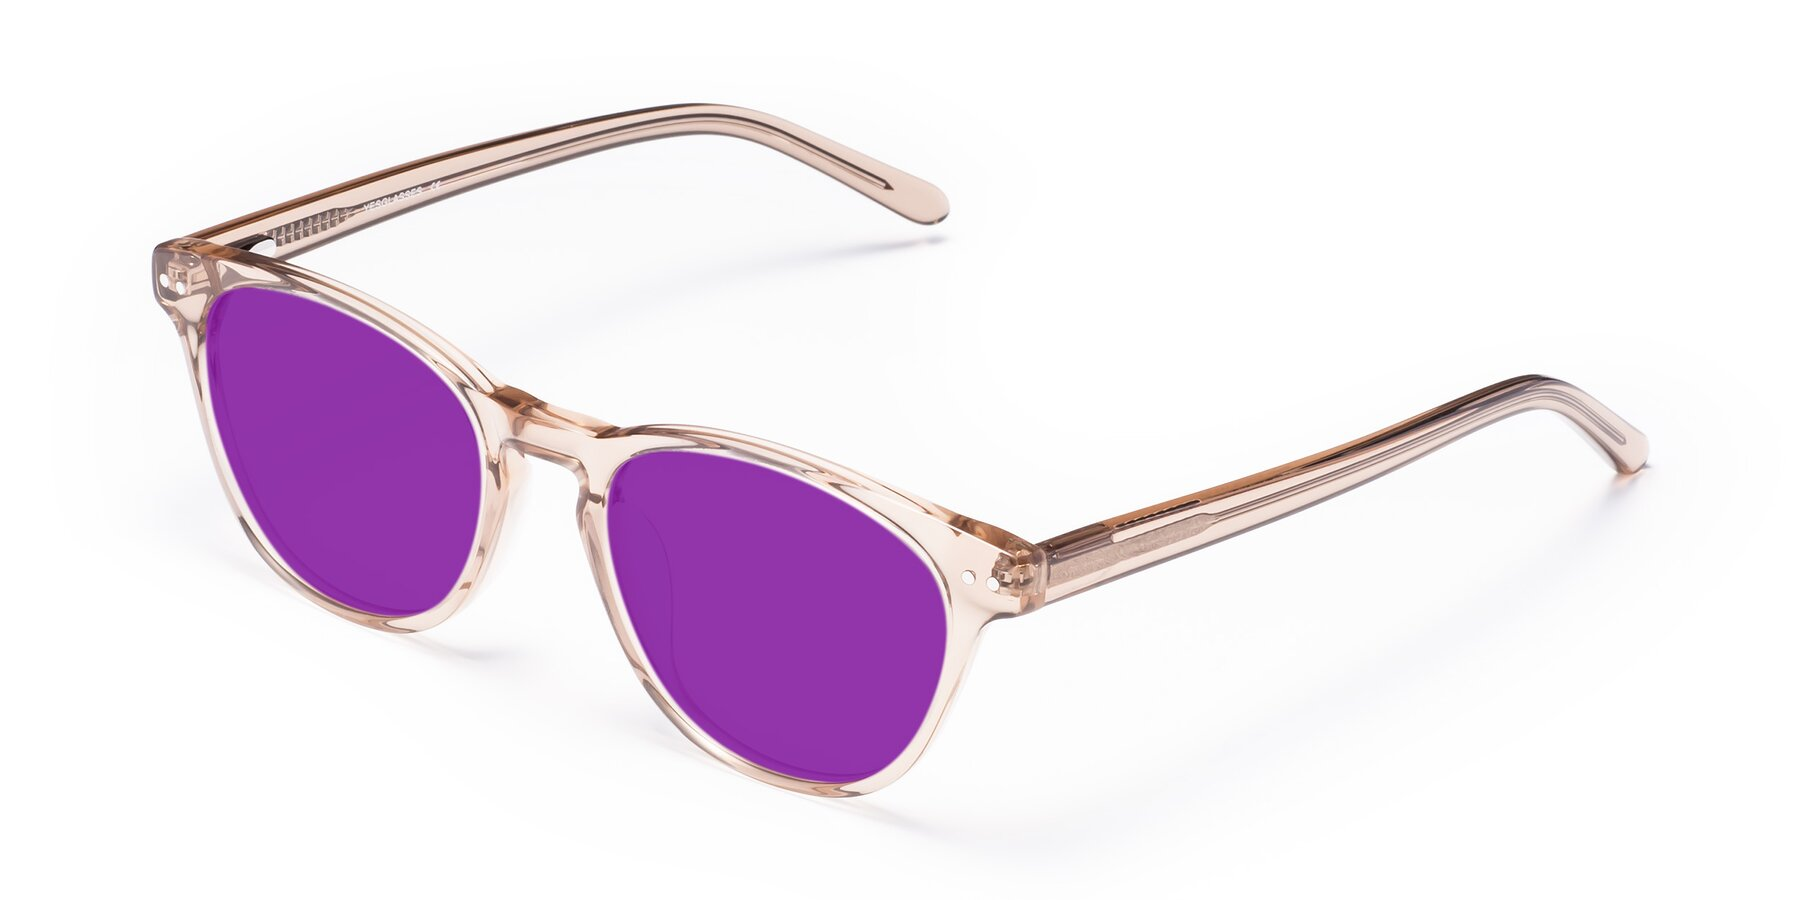 Angle of Blaze in light Brown with Purple Tinted Lenses